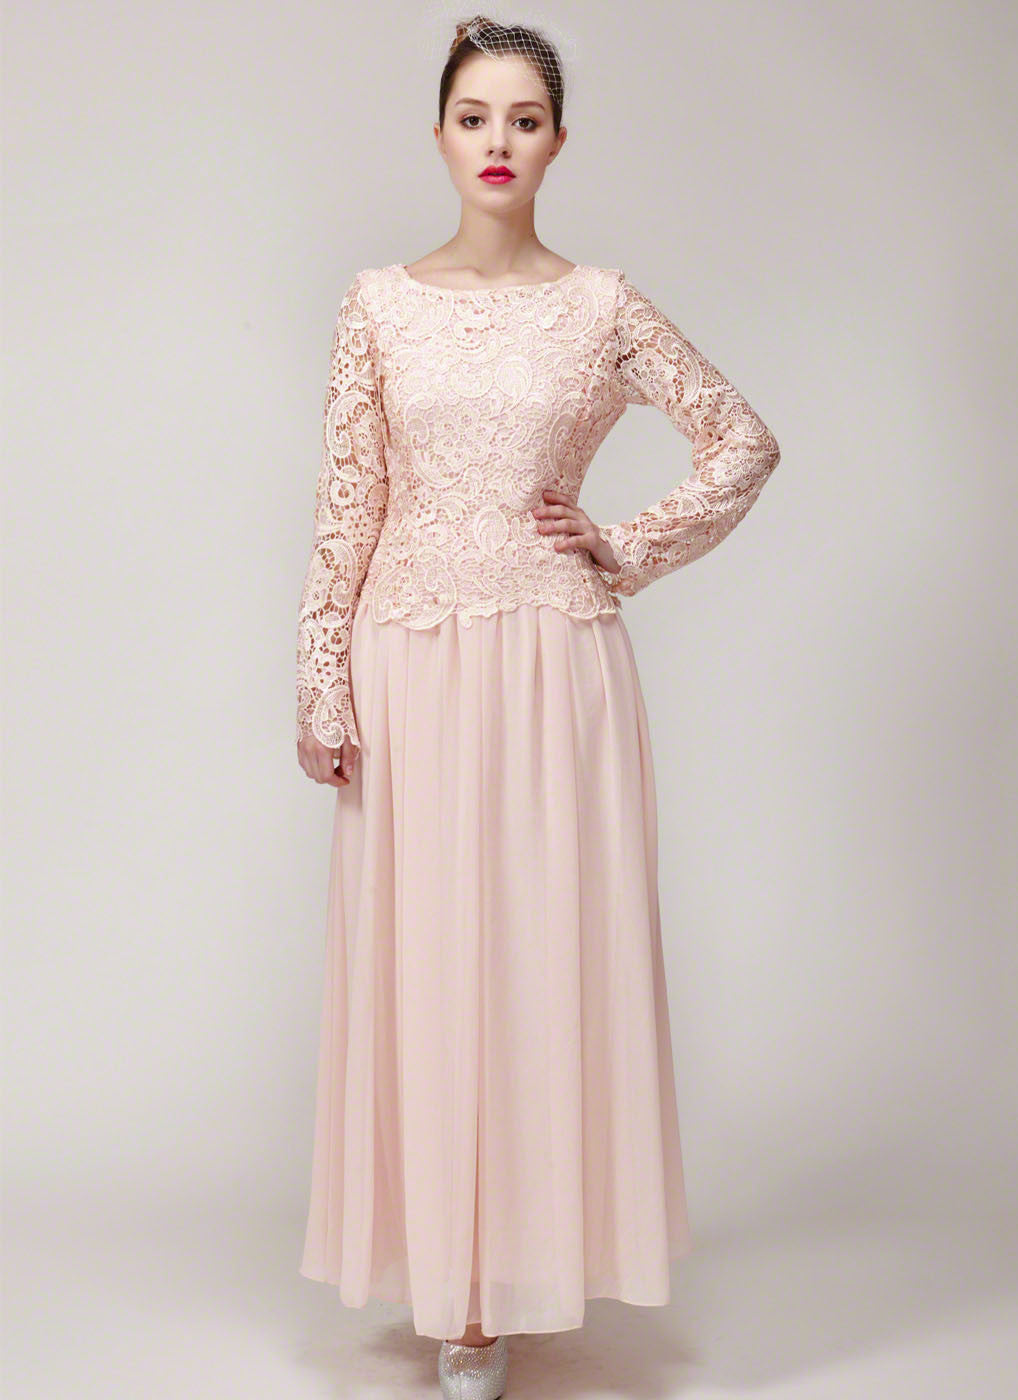 Nude Pink Lace Bridesmaid Maxi Dress with Floral Lace Peplum ...